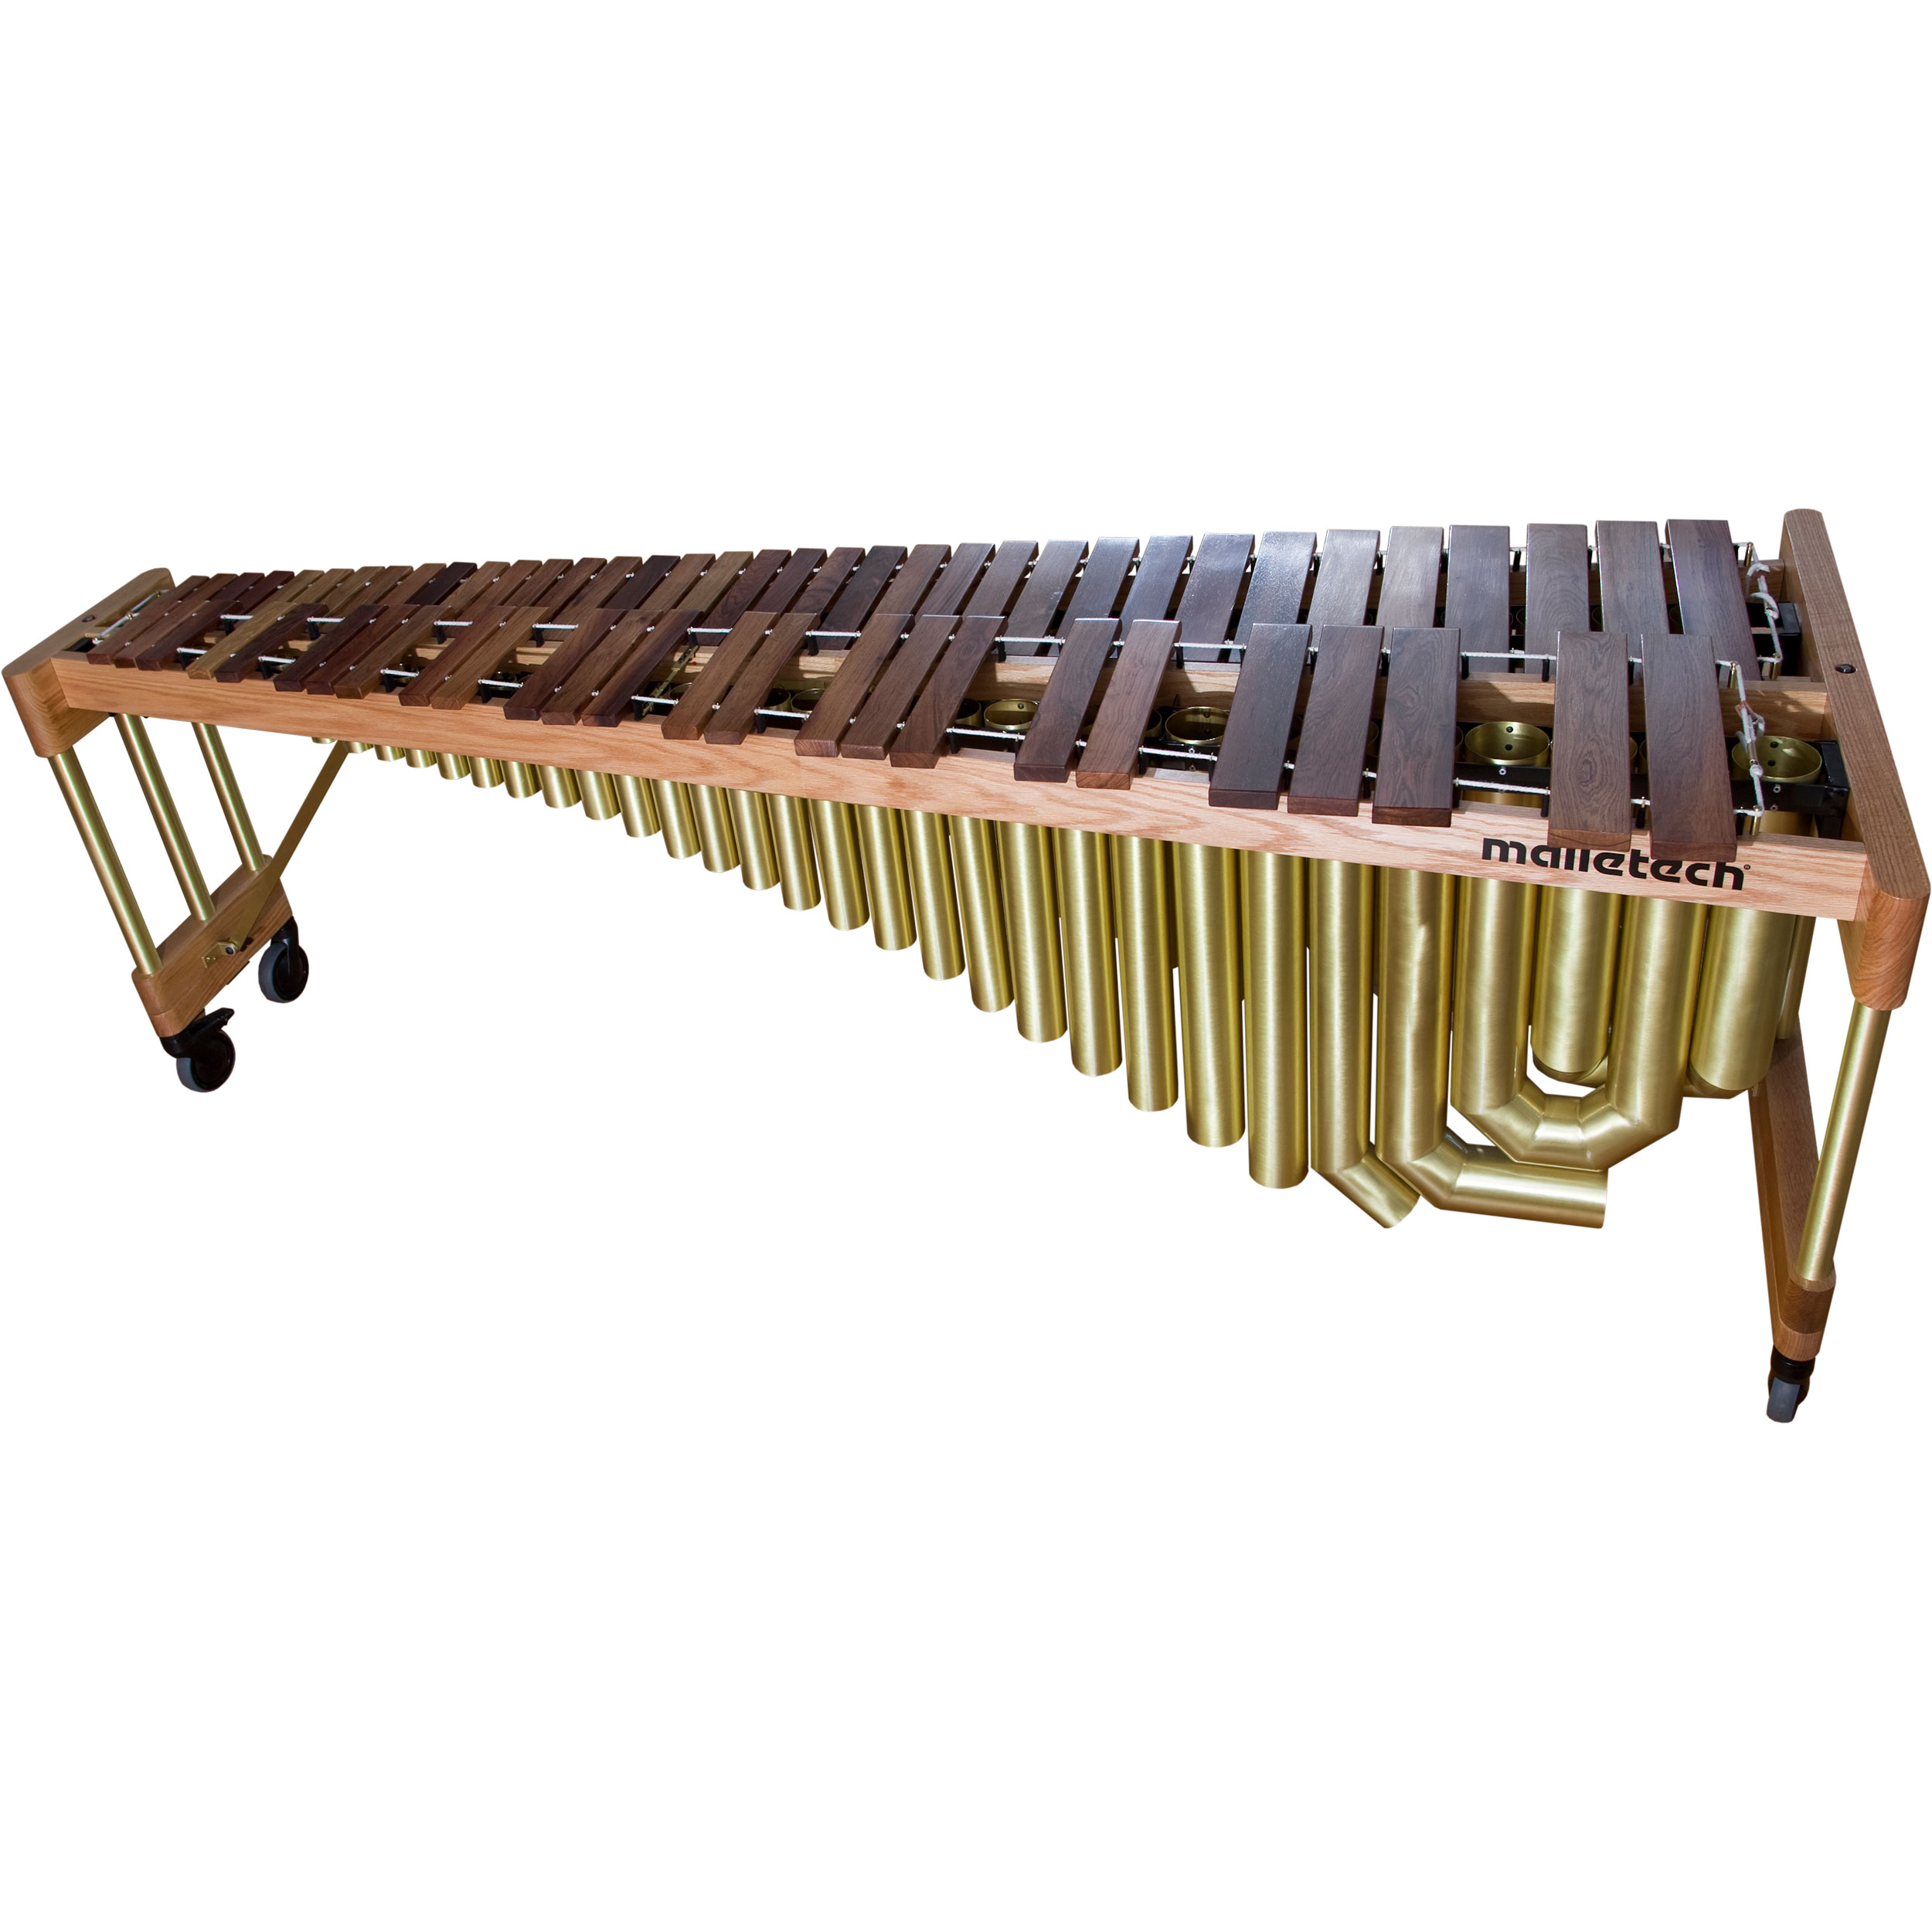 Malletech Imperial Grand Series 5.0 Octave Height Adjustable Rosewood Marimba